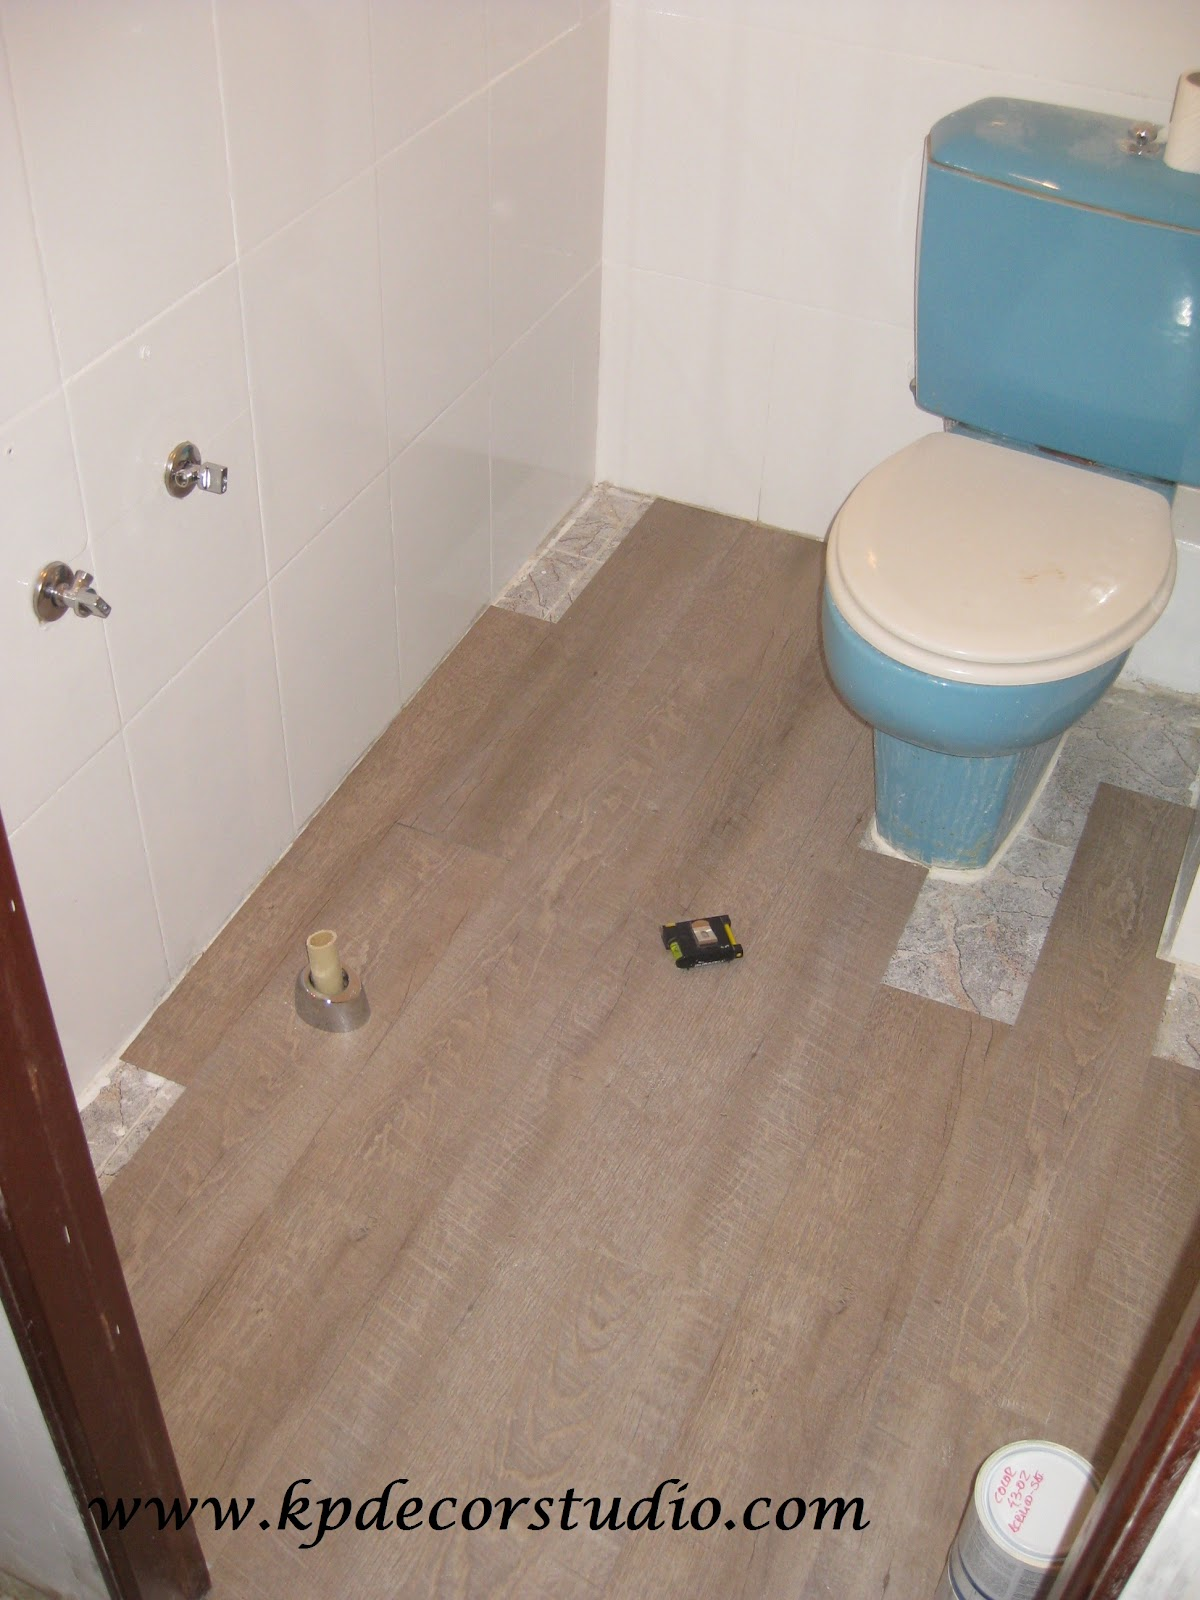 Kp decor studio reformando el ba o reforming the bathroom - Como colocar suelo de vinilo ...